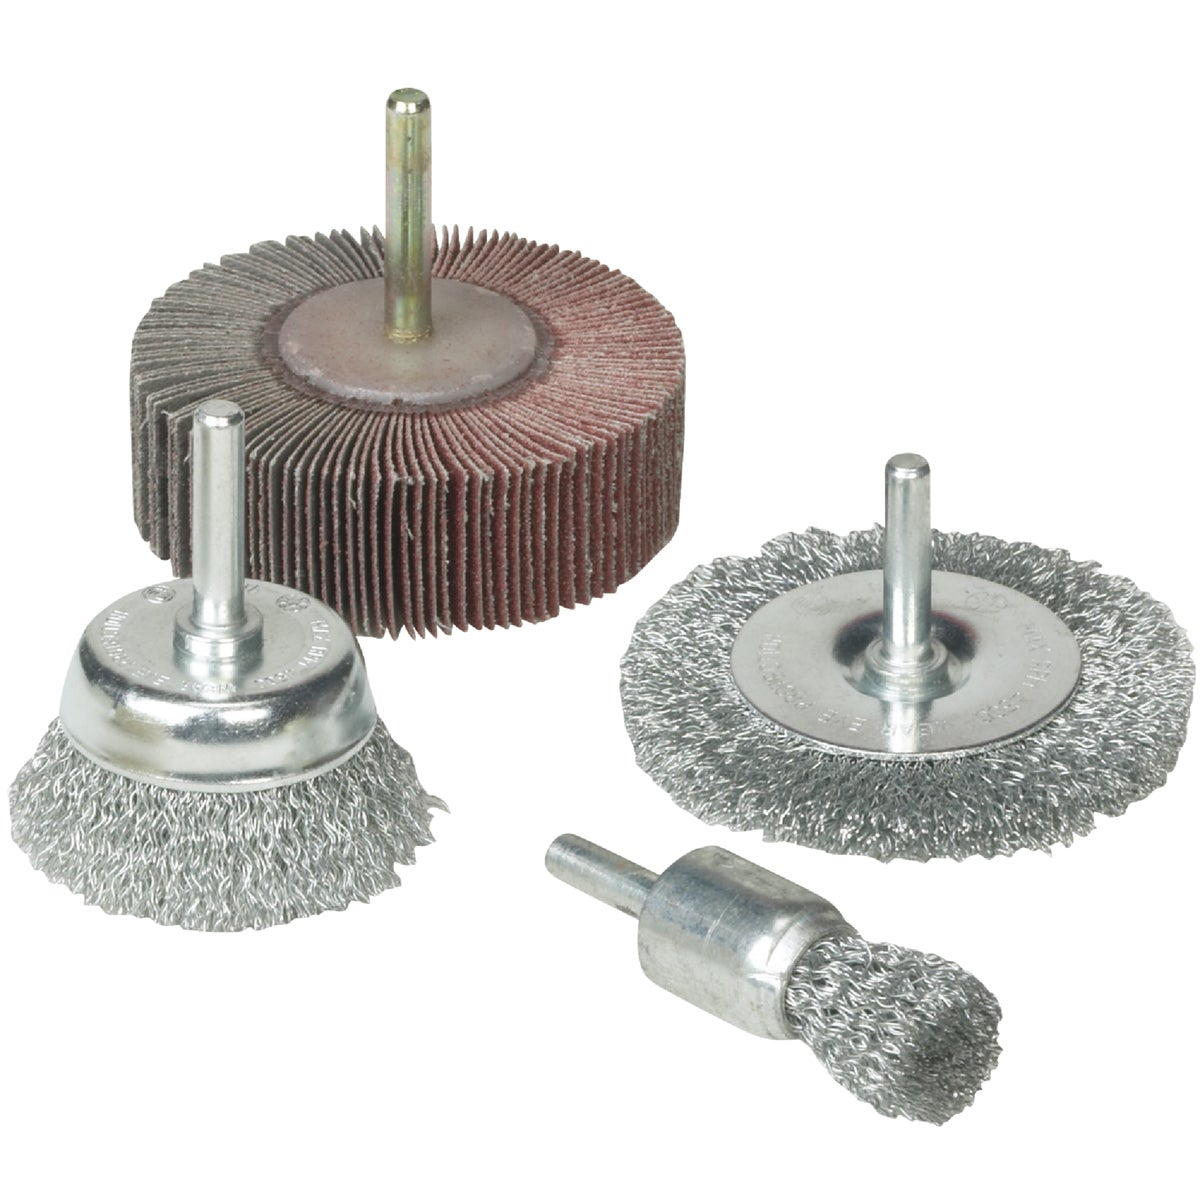 4PC DRILL ACCESSORY KIT - 36455 by Weiler Corporation